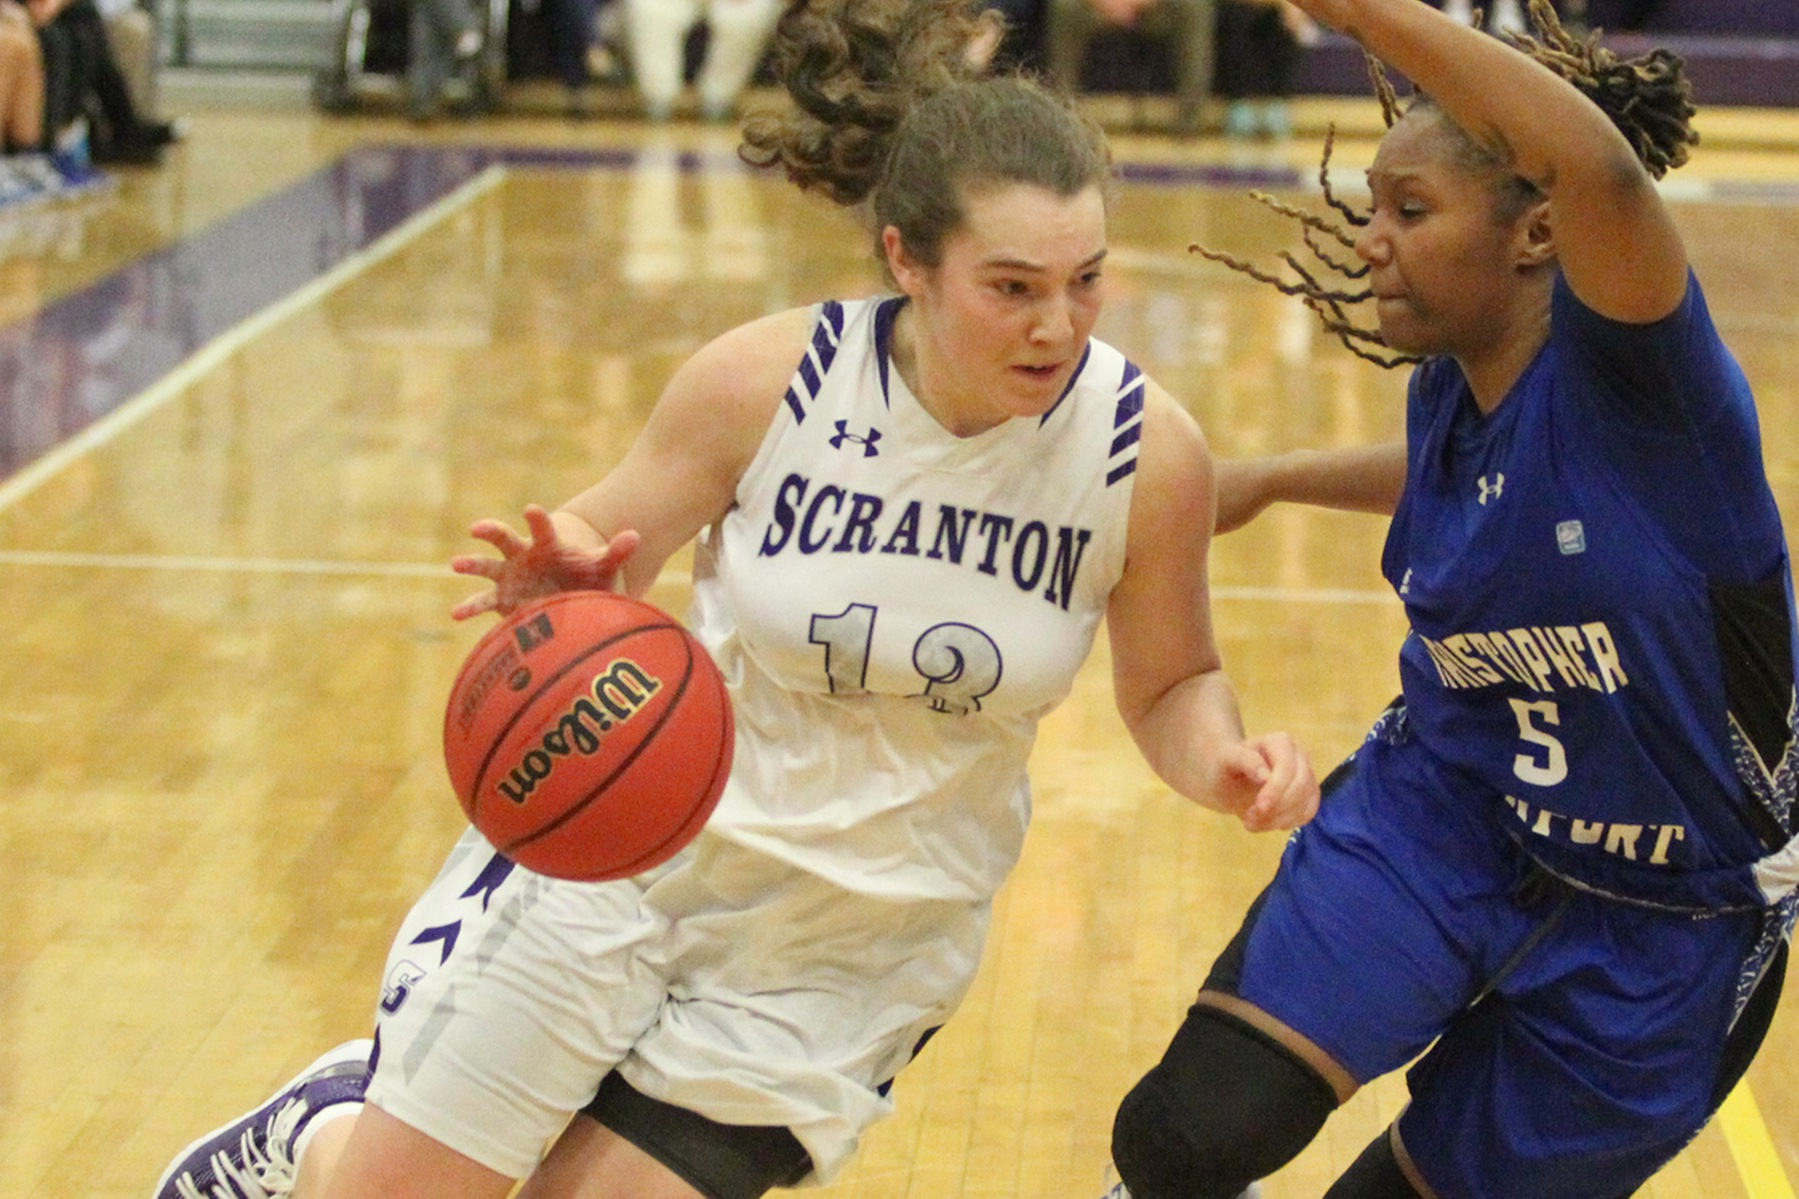 No. 9 Lady Royals Use Late Rally, Timely Bounce to Overcome CNU, 57-56